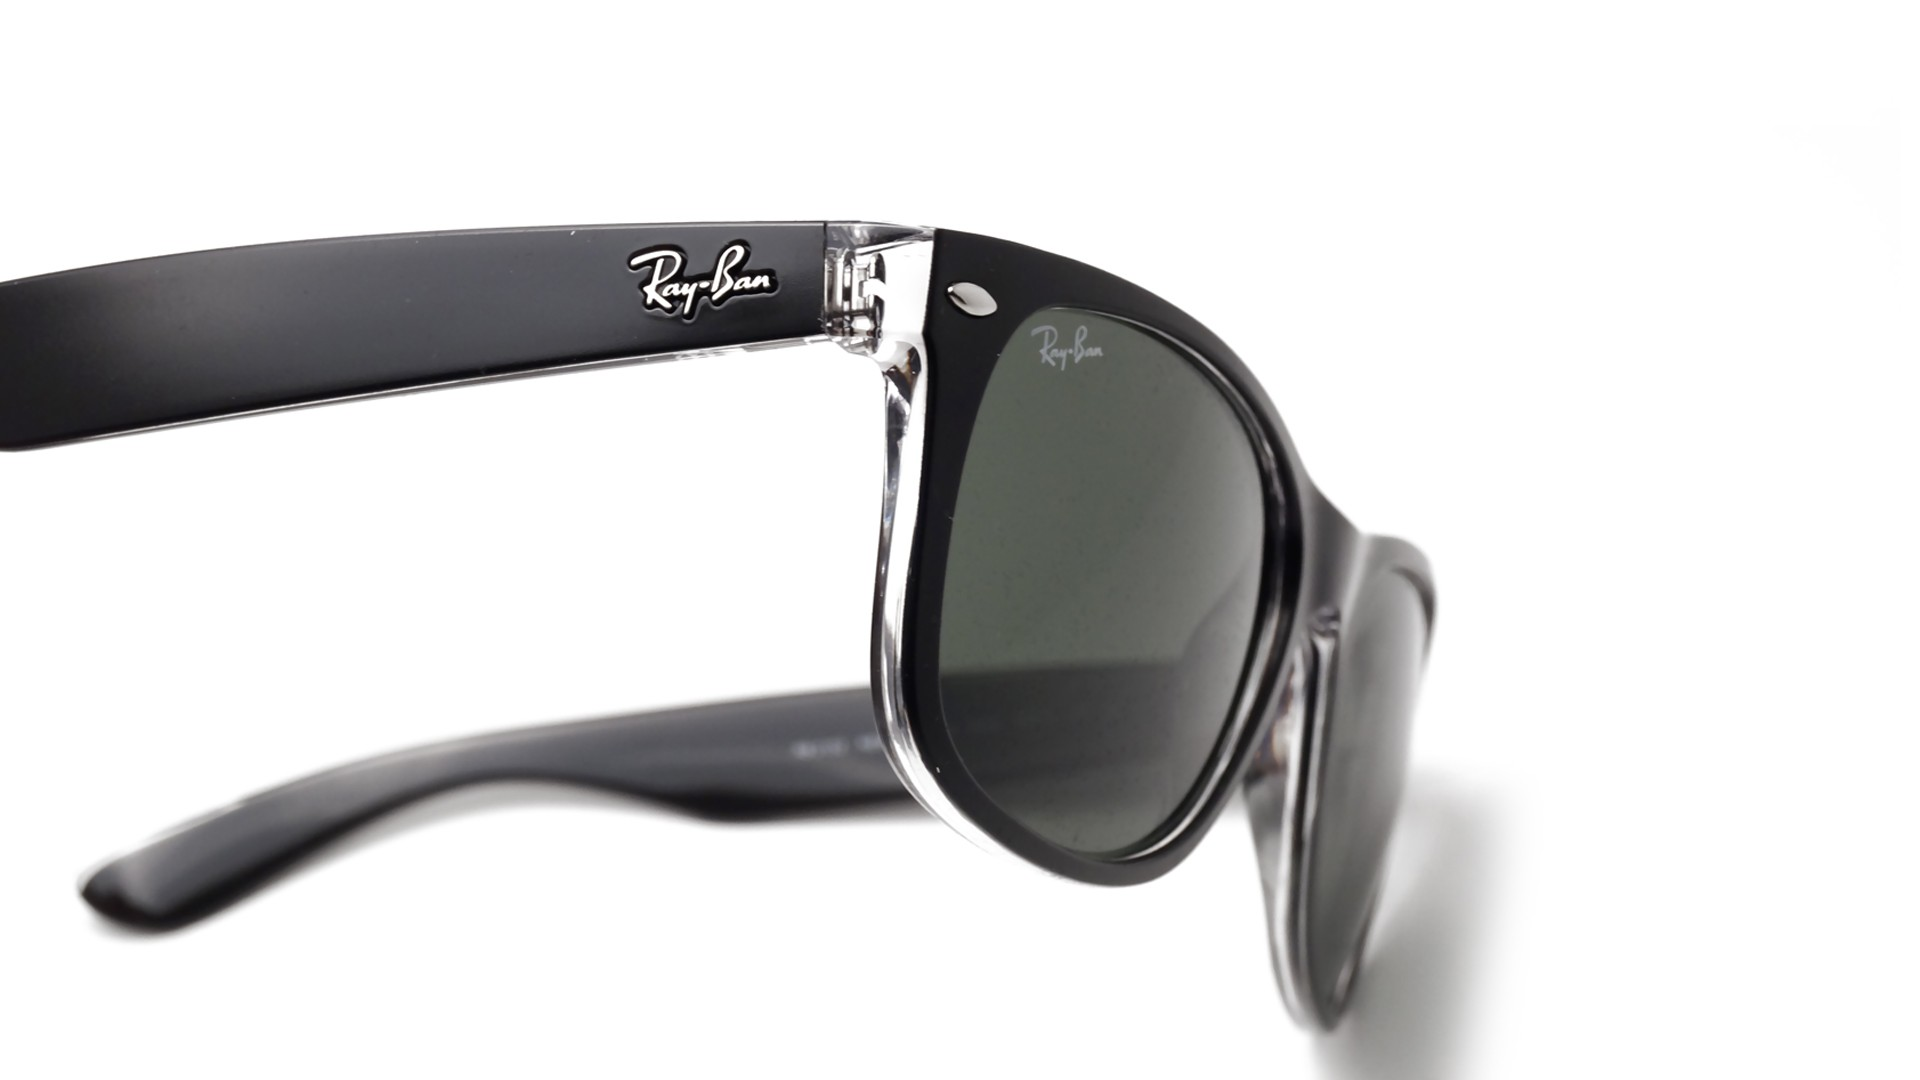 09abcfcc749 Sunglasses Ray-Ban New Wayfarer Black Matte G-15 RB2132 6052 58-18 Large